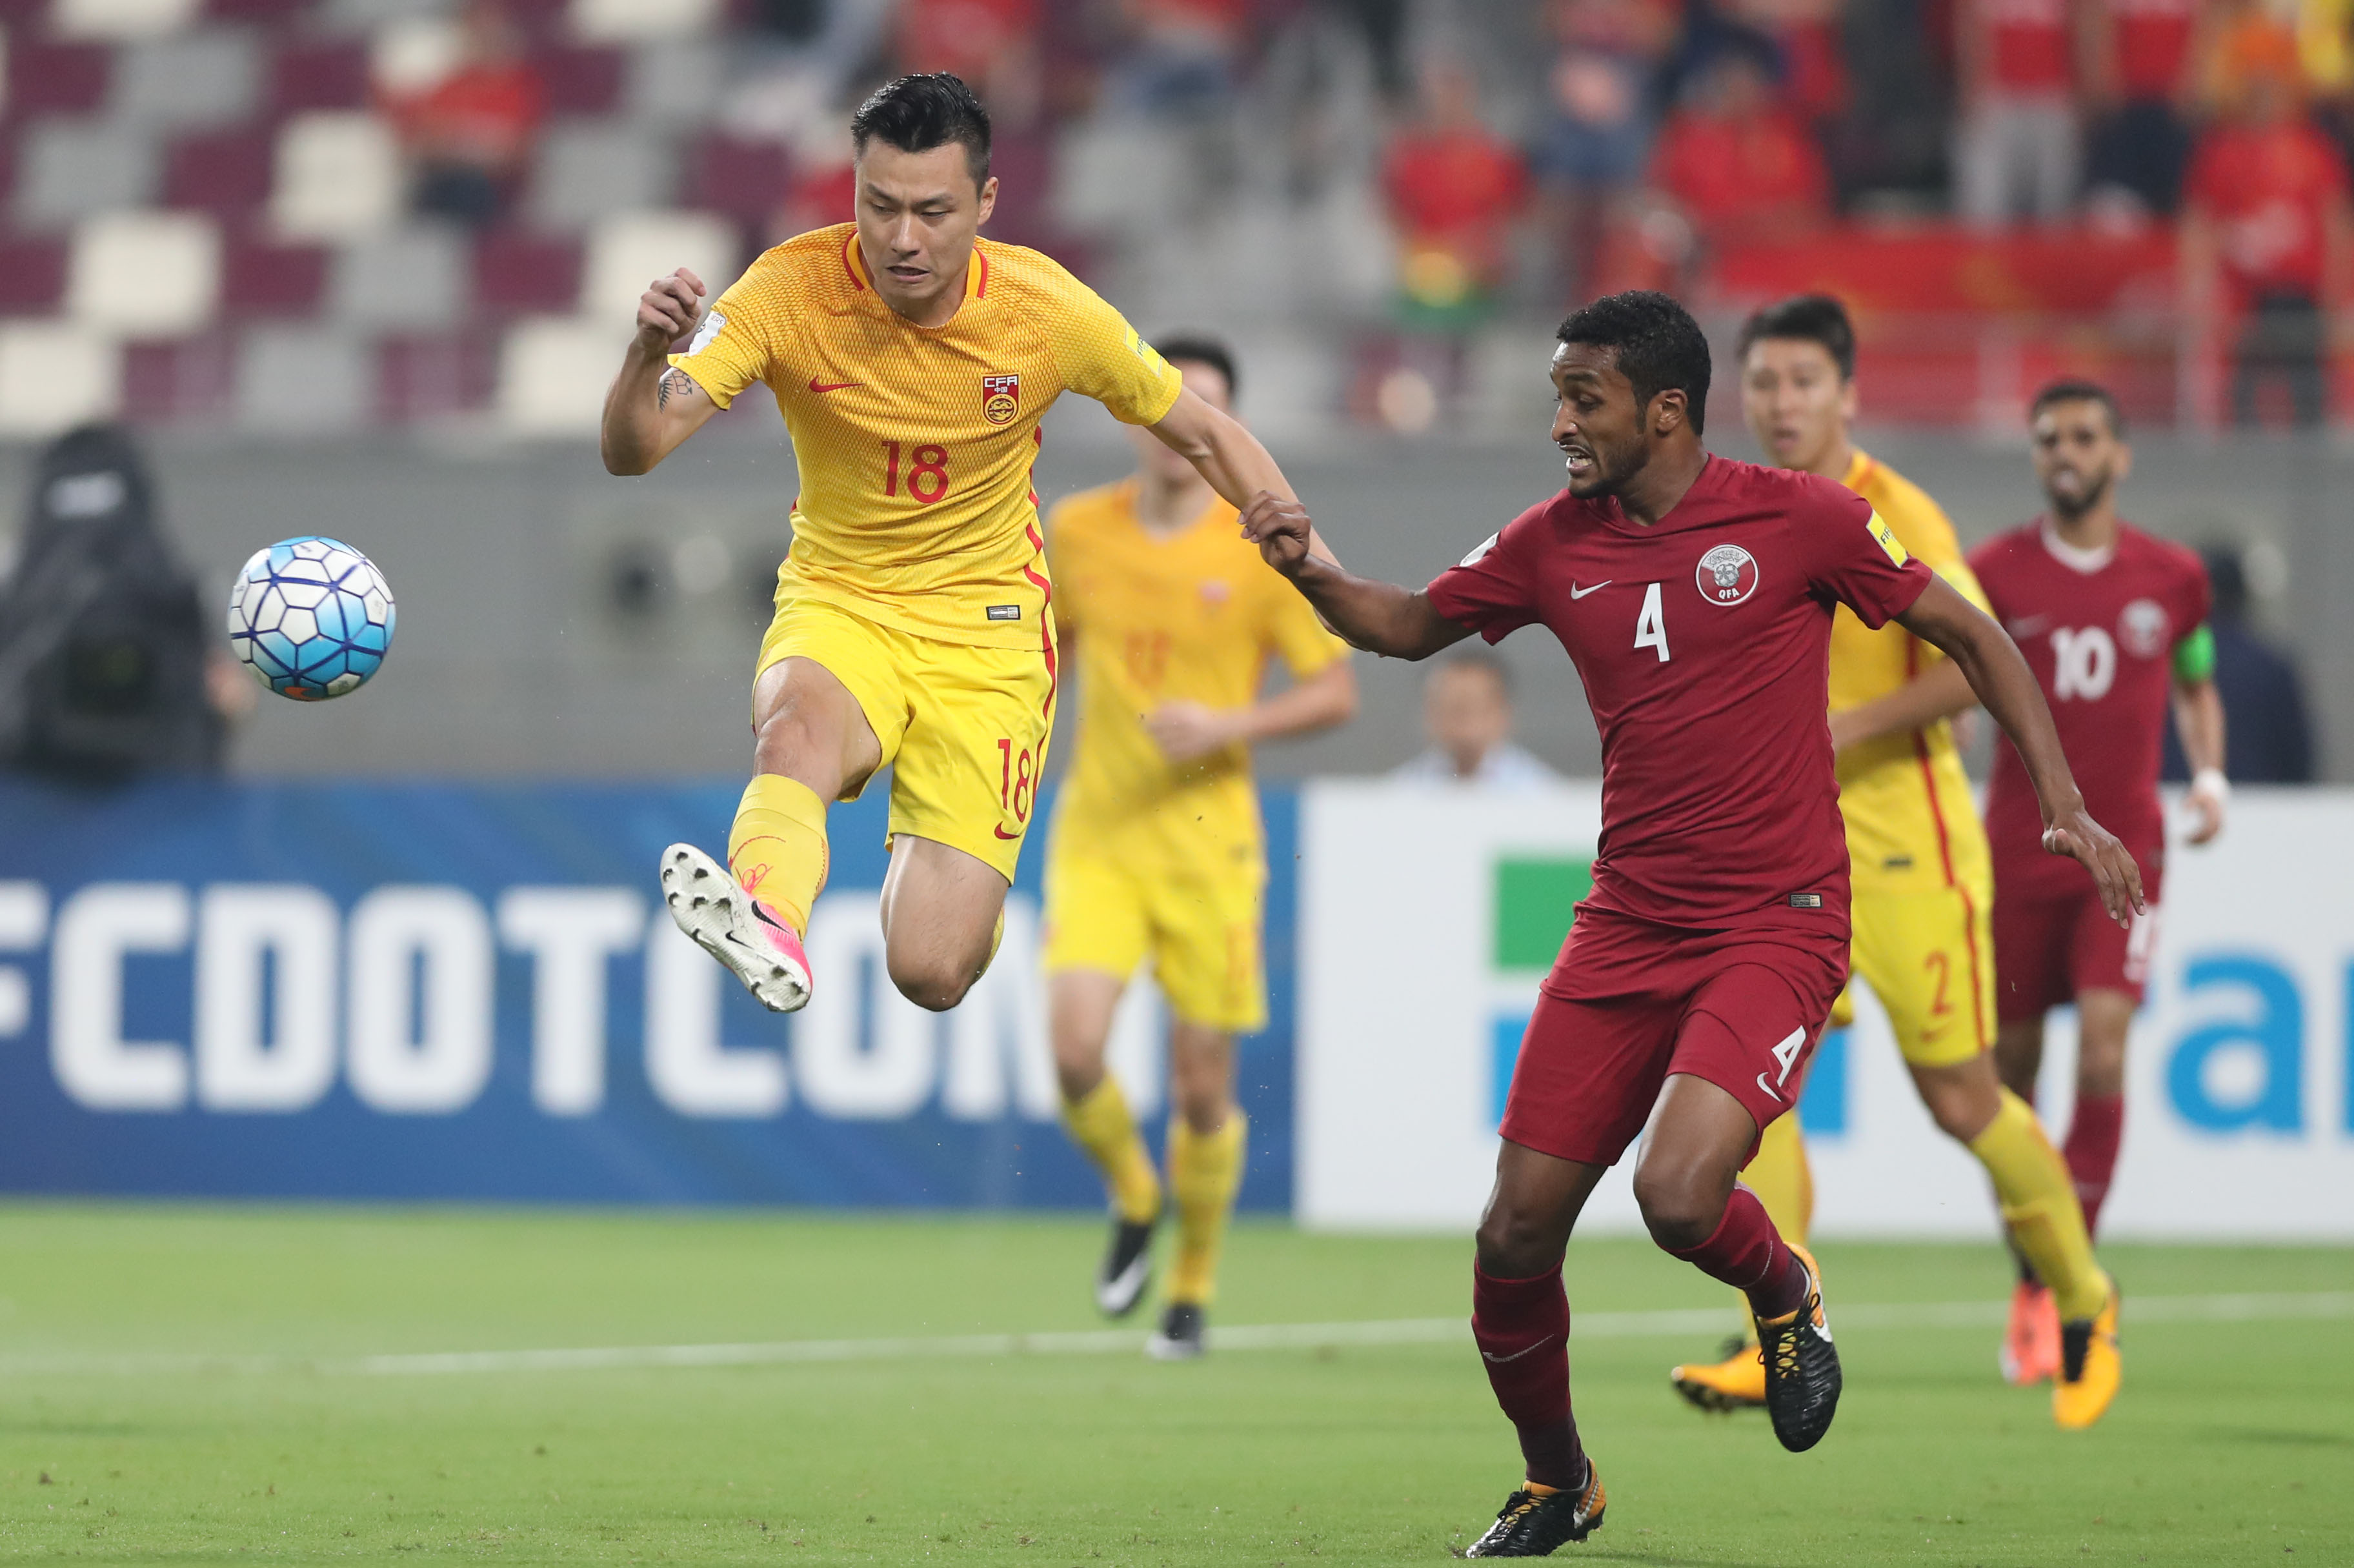 Popular China World Cup 2018 - Qatars-against-China-during-their-Asian-Qualefier-world-cup-Russia-2018-at-Khalifa-Stadium-in-Doha-5-9-2017-1-5-1  Image_343818 .jpg